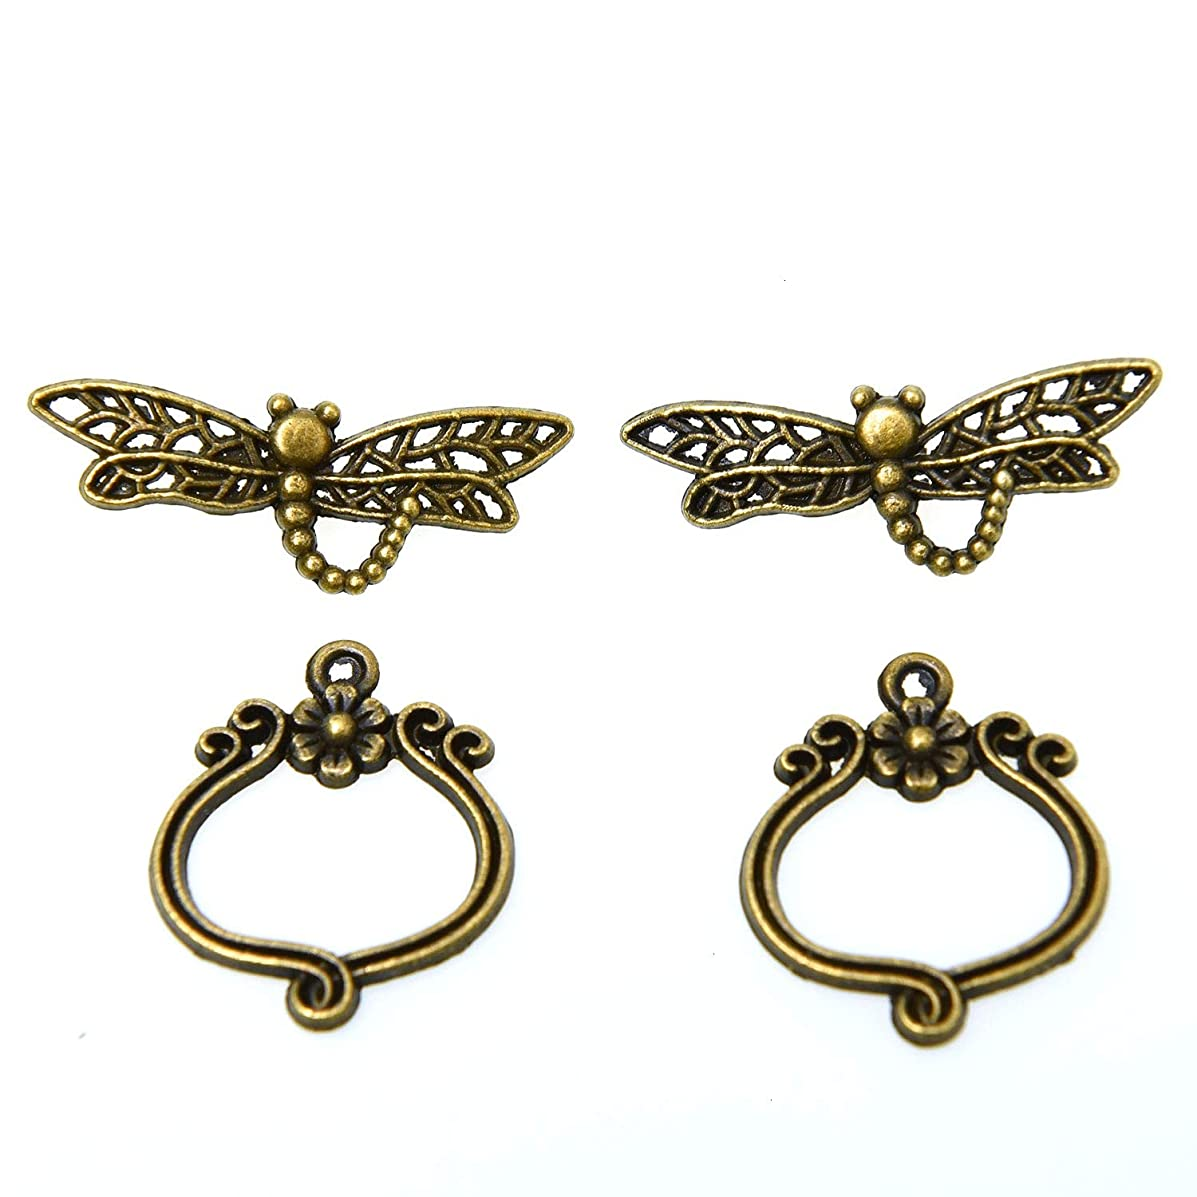 Monrocco 30 Sets Antique Bronze Flower Dragonfly Toggle Clasps Jewelry Bracelet Clasp Connector for Jewelry Making